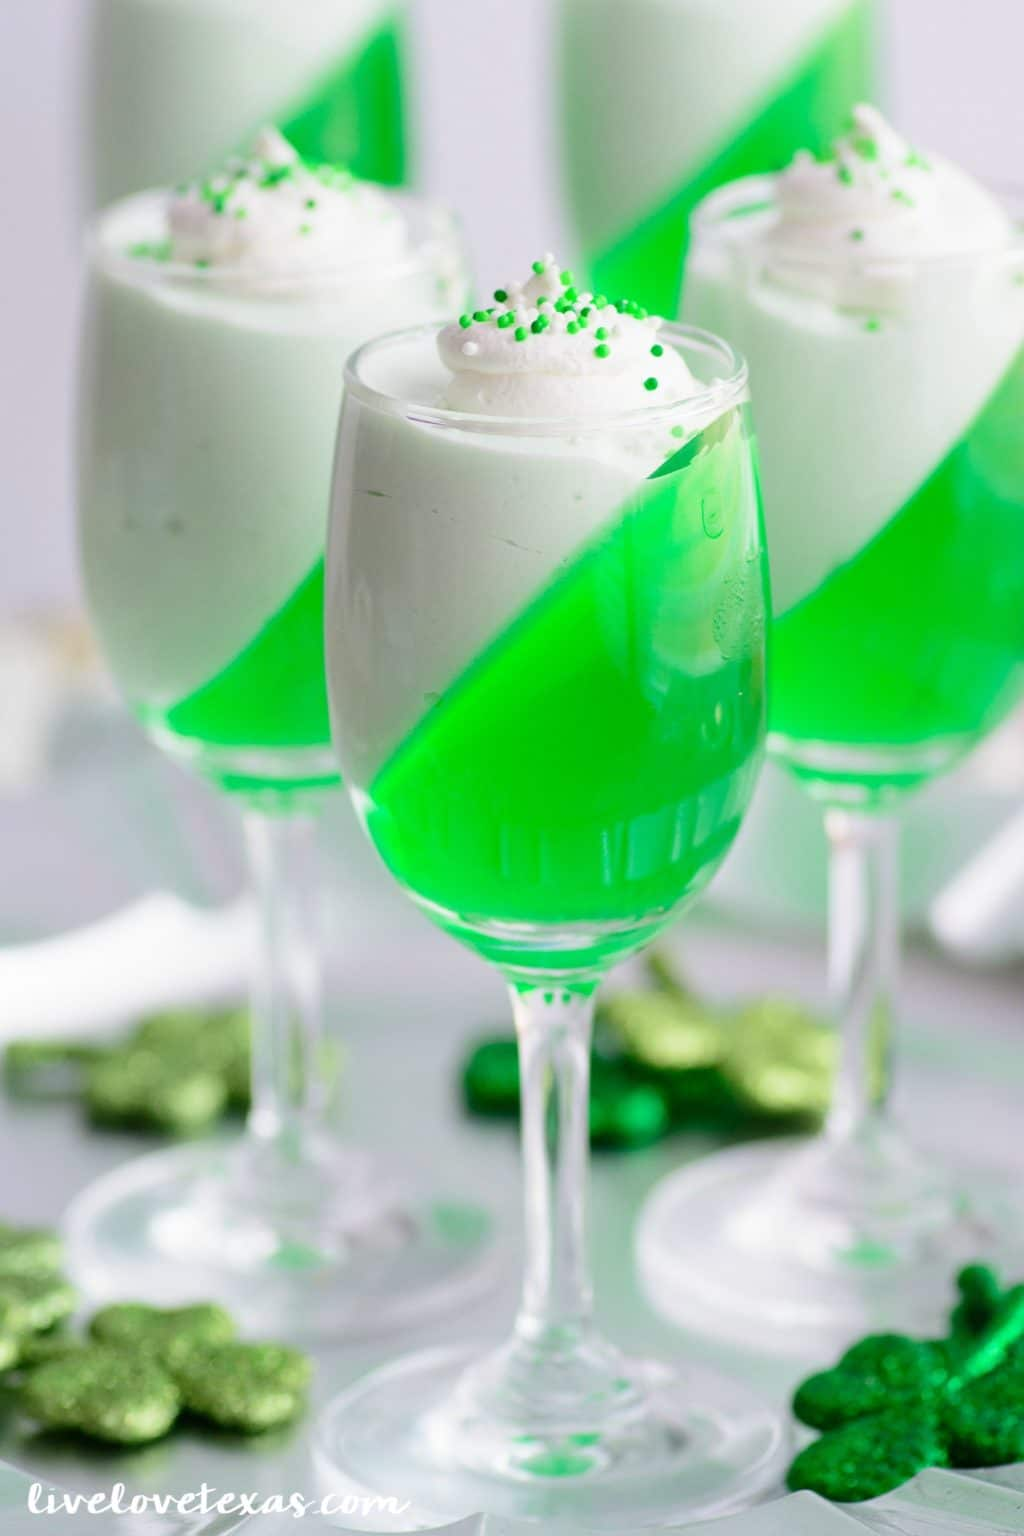 St. Patty's Day Jello Parfait Recipe. This festive dessert recipe only has two ingredients and is so easy to make! #stpattysdaydessert #stpatricksdayrecipes #stpattysdayrecipes #dessertrecipes #easydesserts #easyrecipes #jellorecipes #greenfood